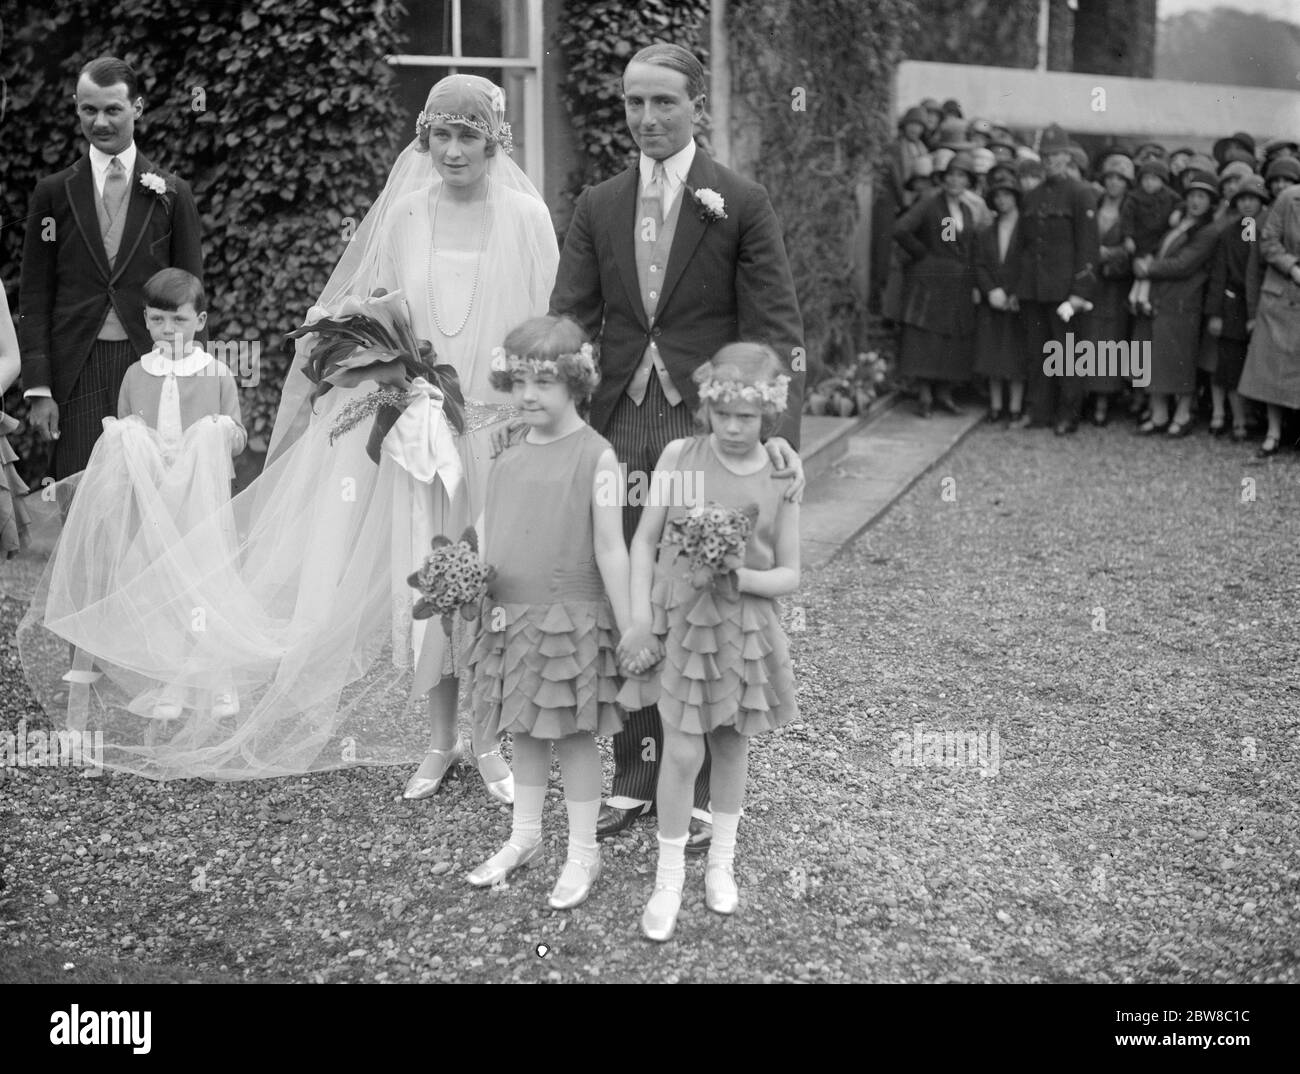 The Earl of Westopelands 's brother weds . The wedding took place at Hollywell on Thursday on the Hon Mountjoy Fane , and Miss Ackland Hood . Bride and bridegroom after ceremony . 29 April 1926 Stock Photo